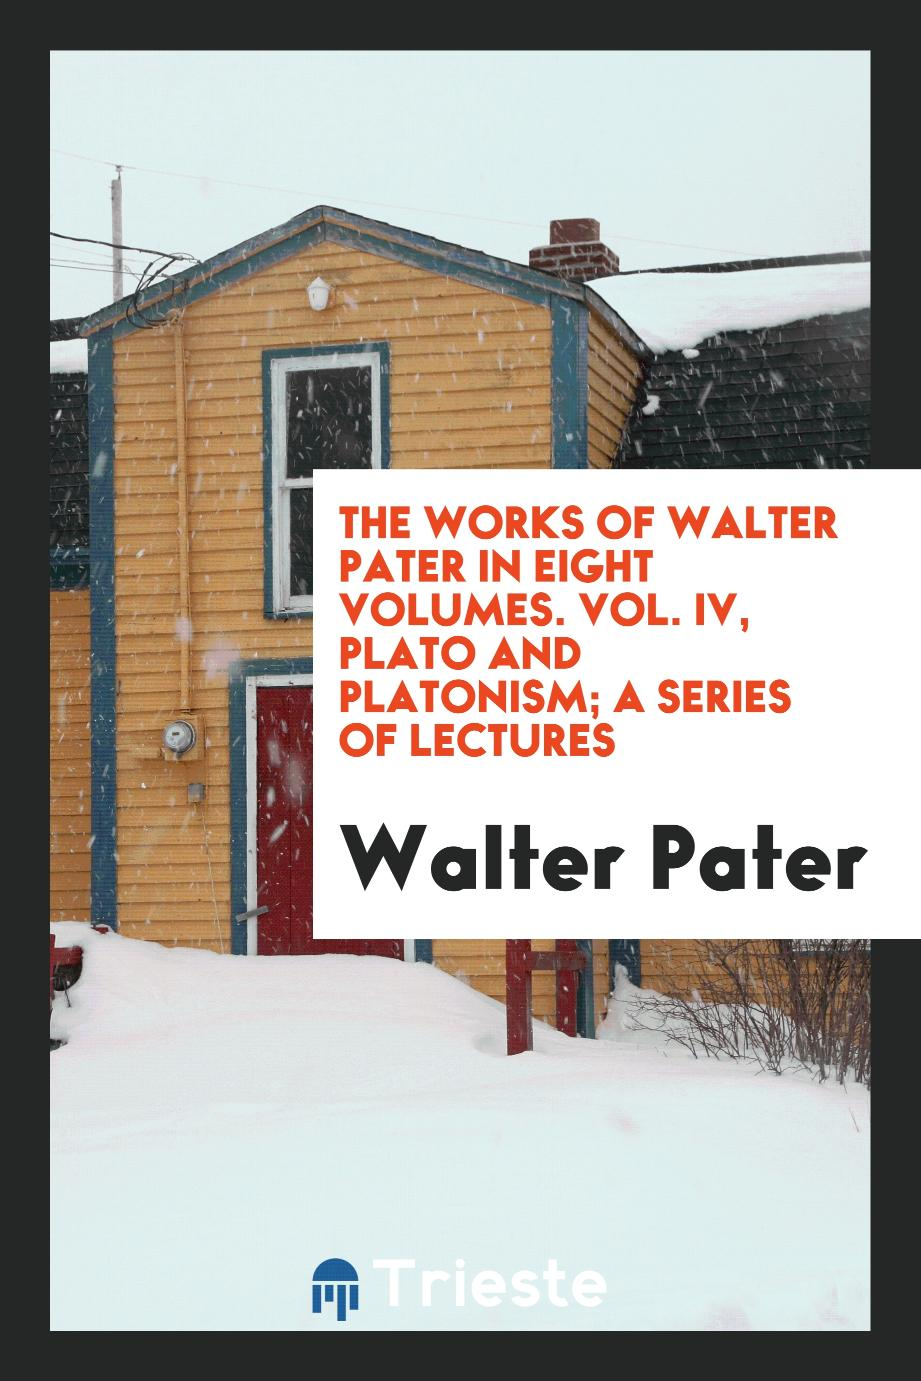 The Works of Walter Pater in Eight Volumes. Vol. IV, Plato and Platonism; A Series of Lectures